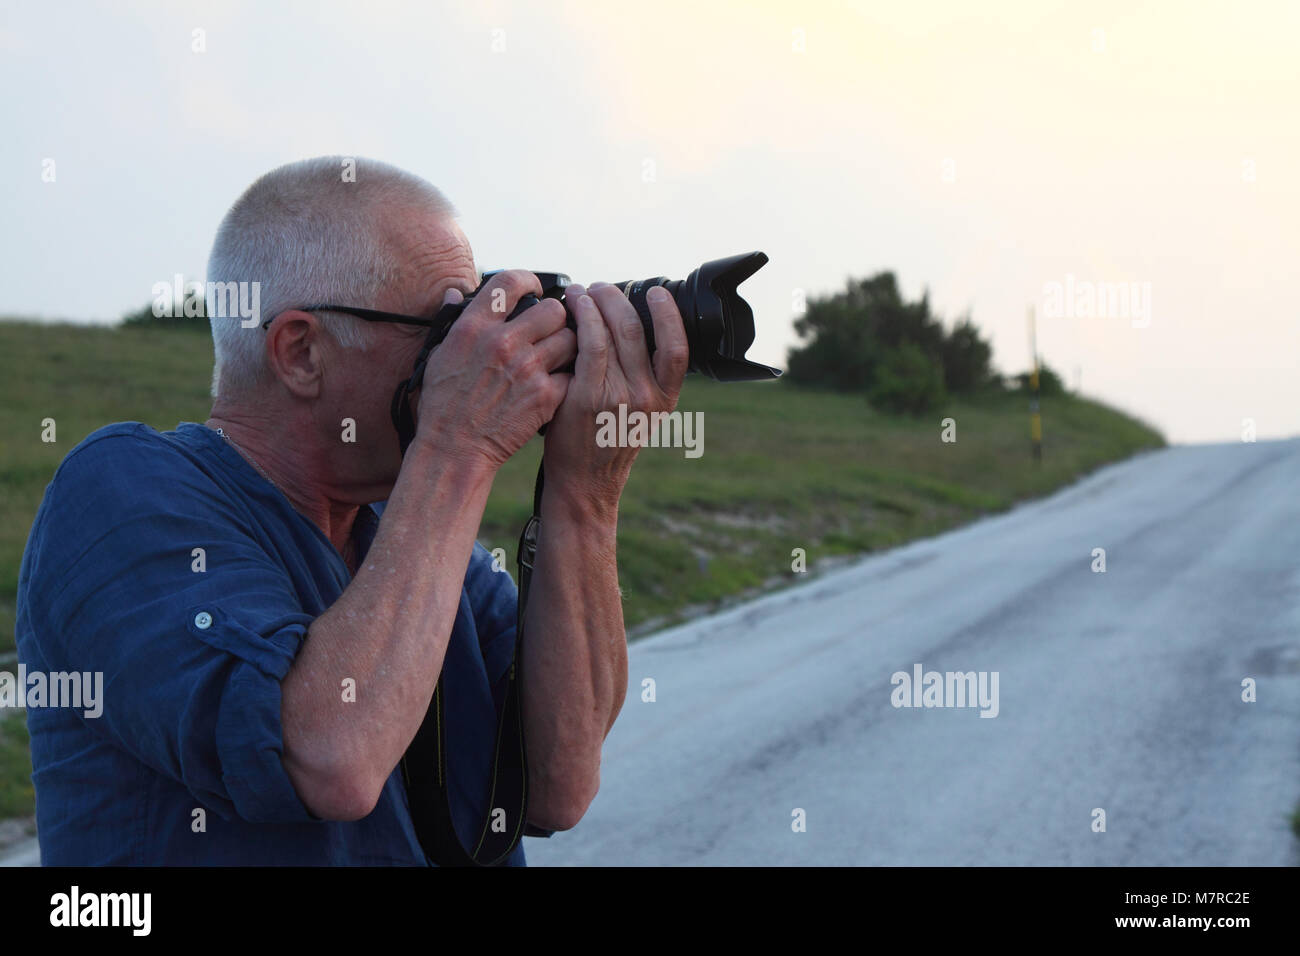 White man in the 60's photographed in profile. The man is photographing. -  Stock